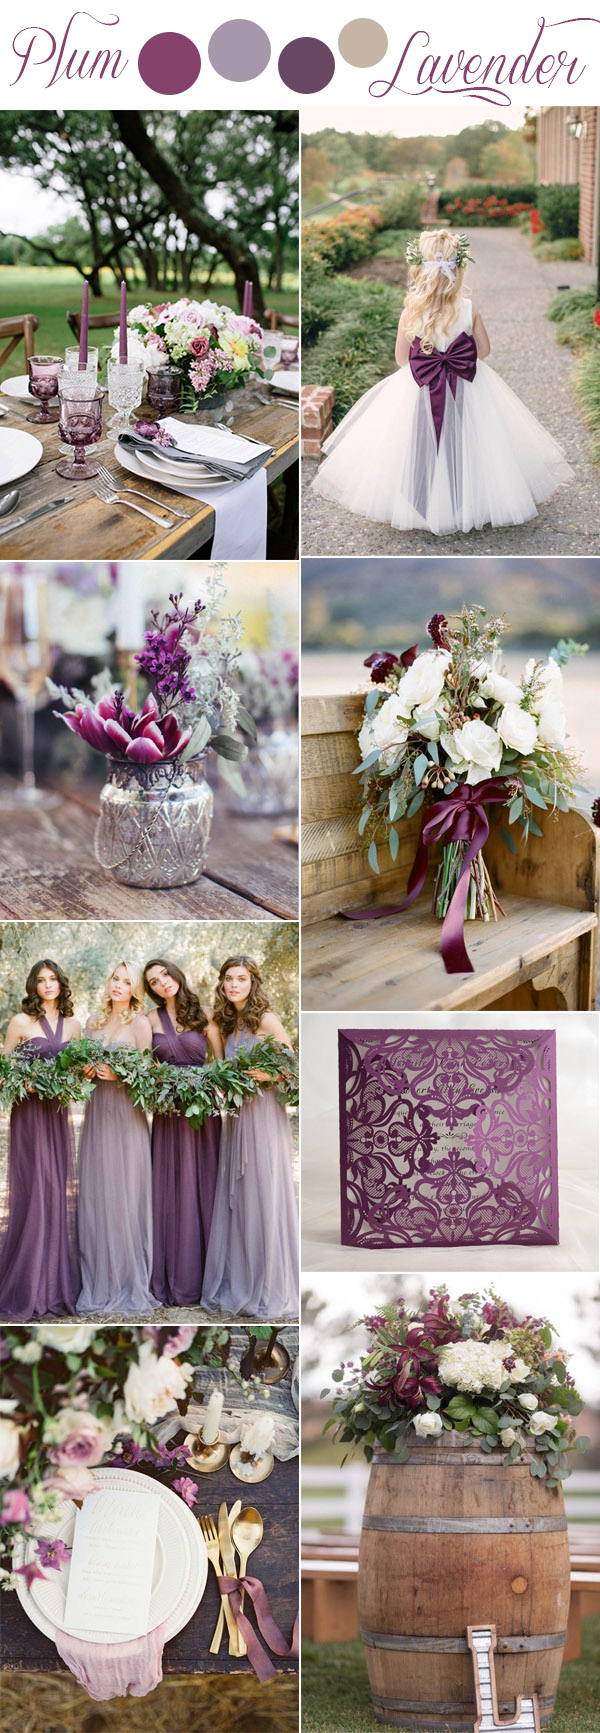 plum, lavender and lilac shades of purple romantic rustic wedding color ideas